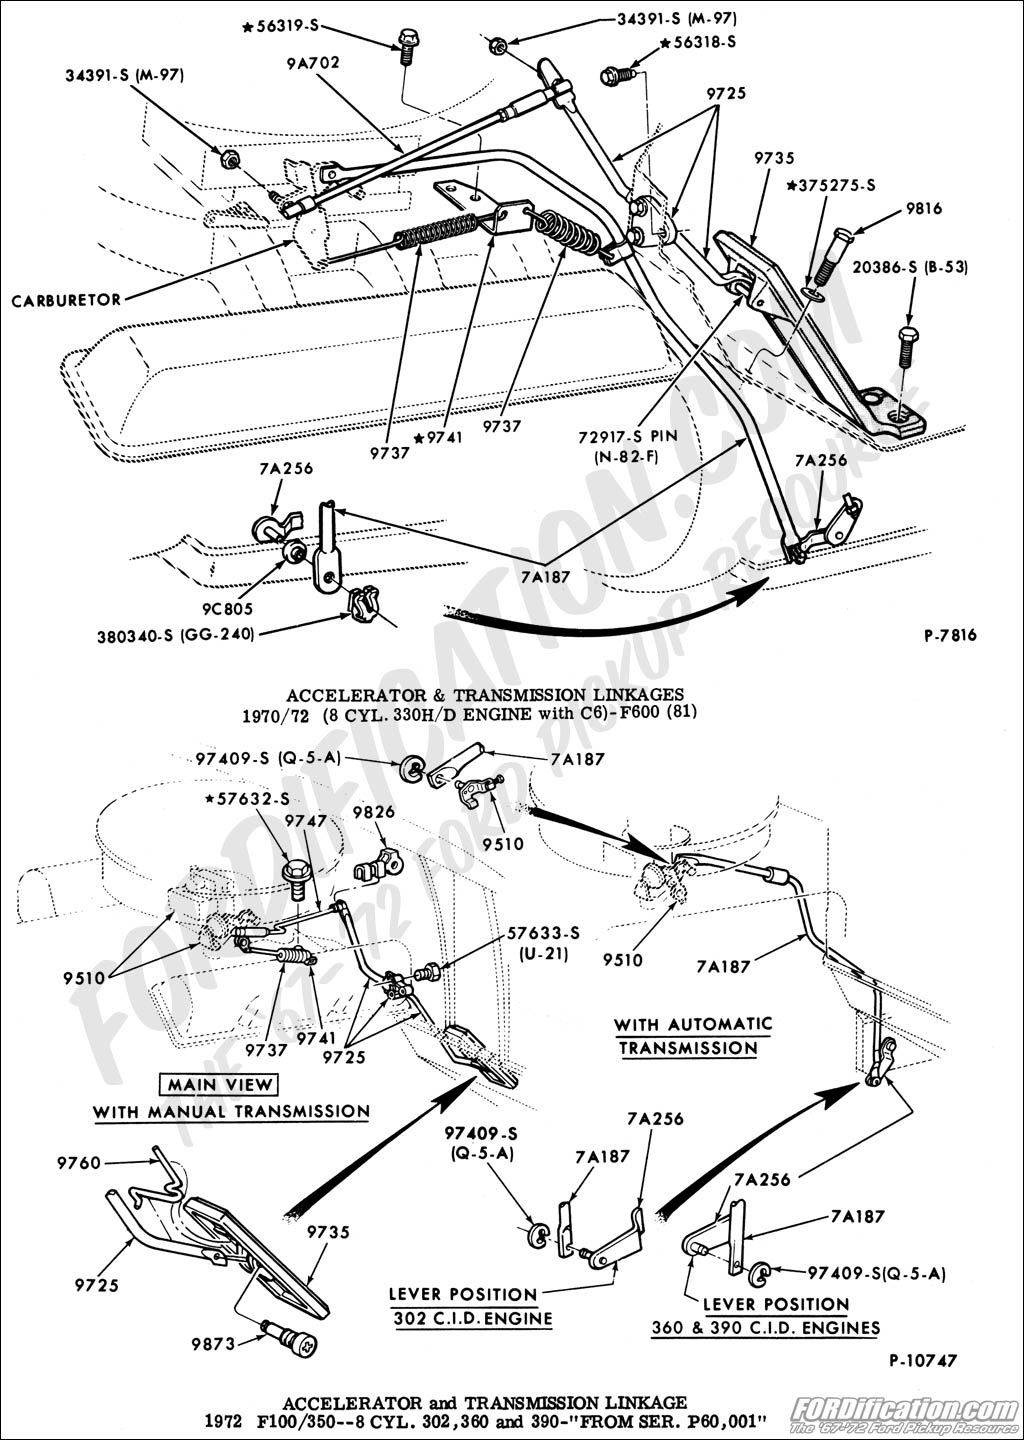 Accelerator Linkage Part Number